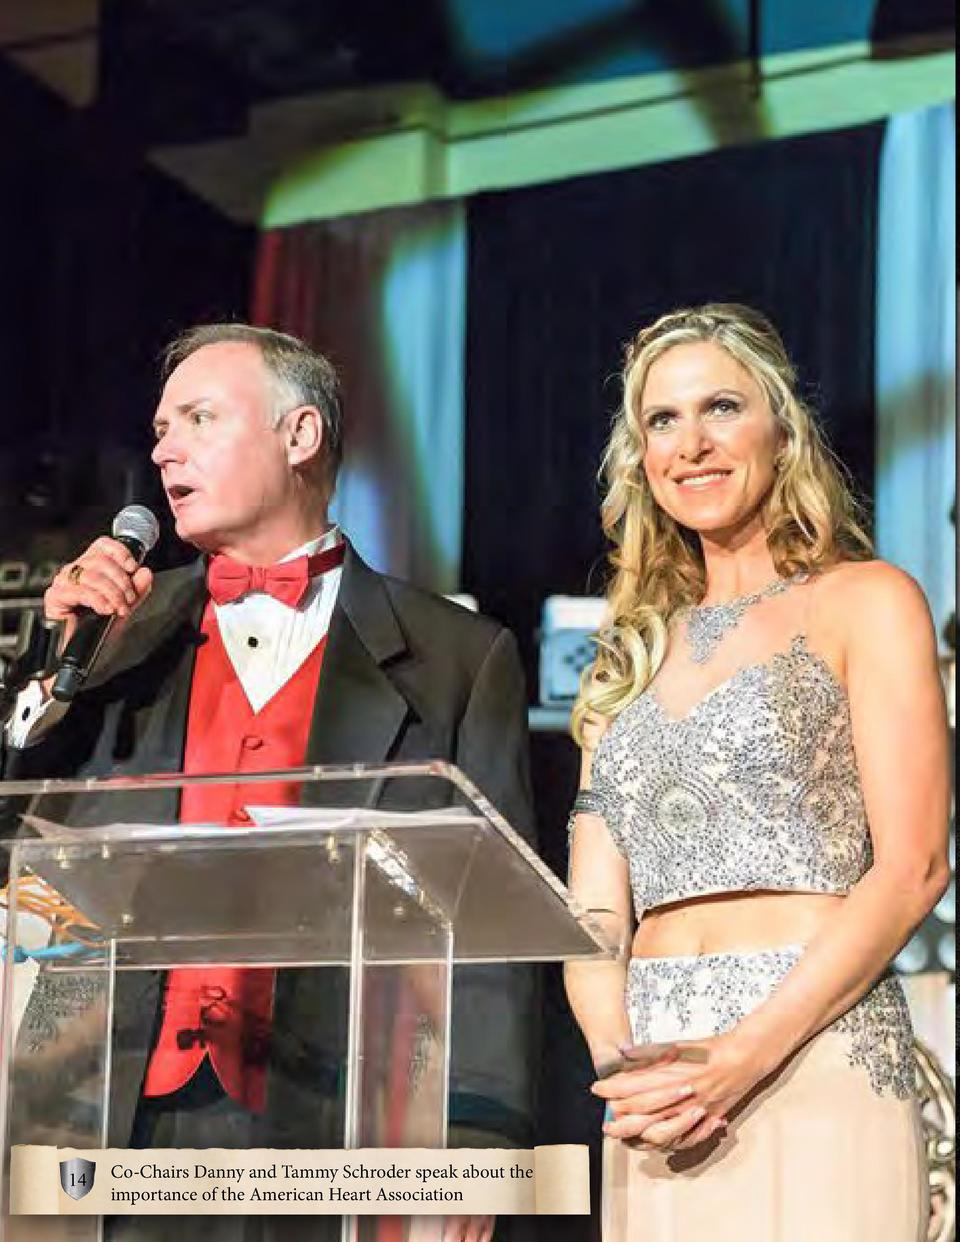 14  Co-Chairs Danny and Tammy Schroder speak about the importance of the American Heart Association